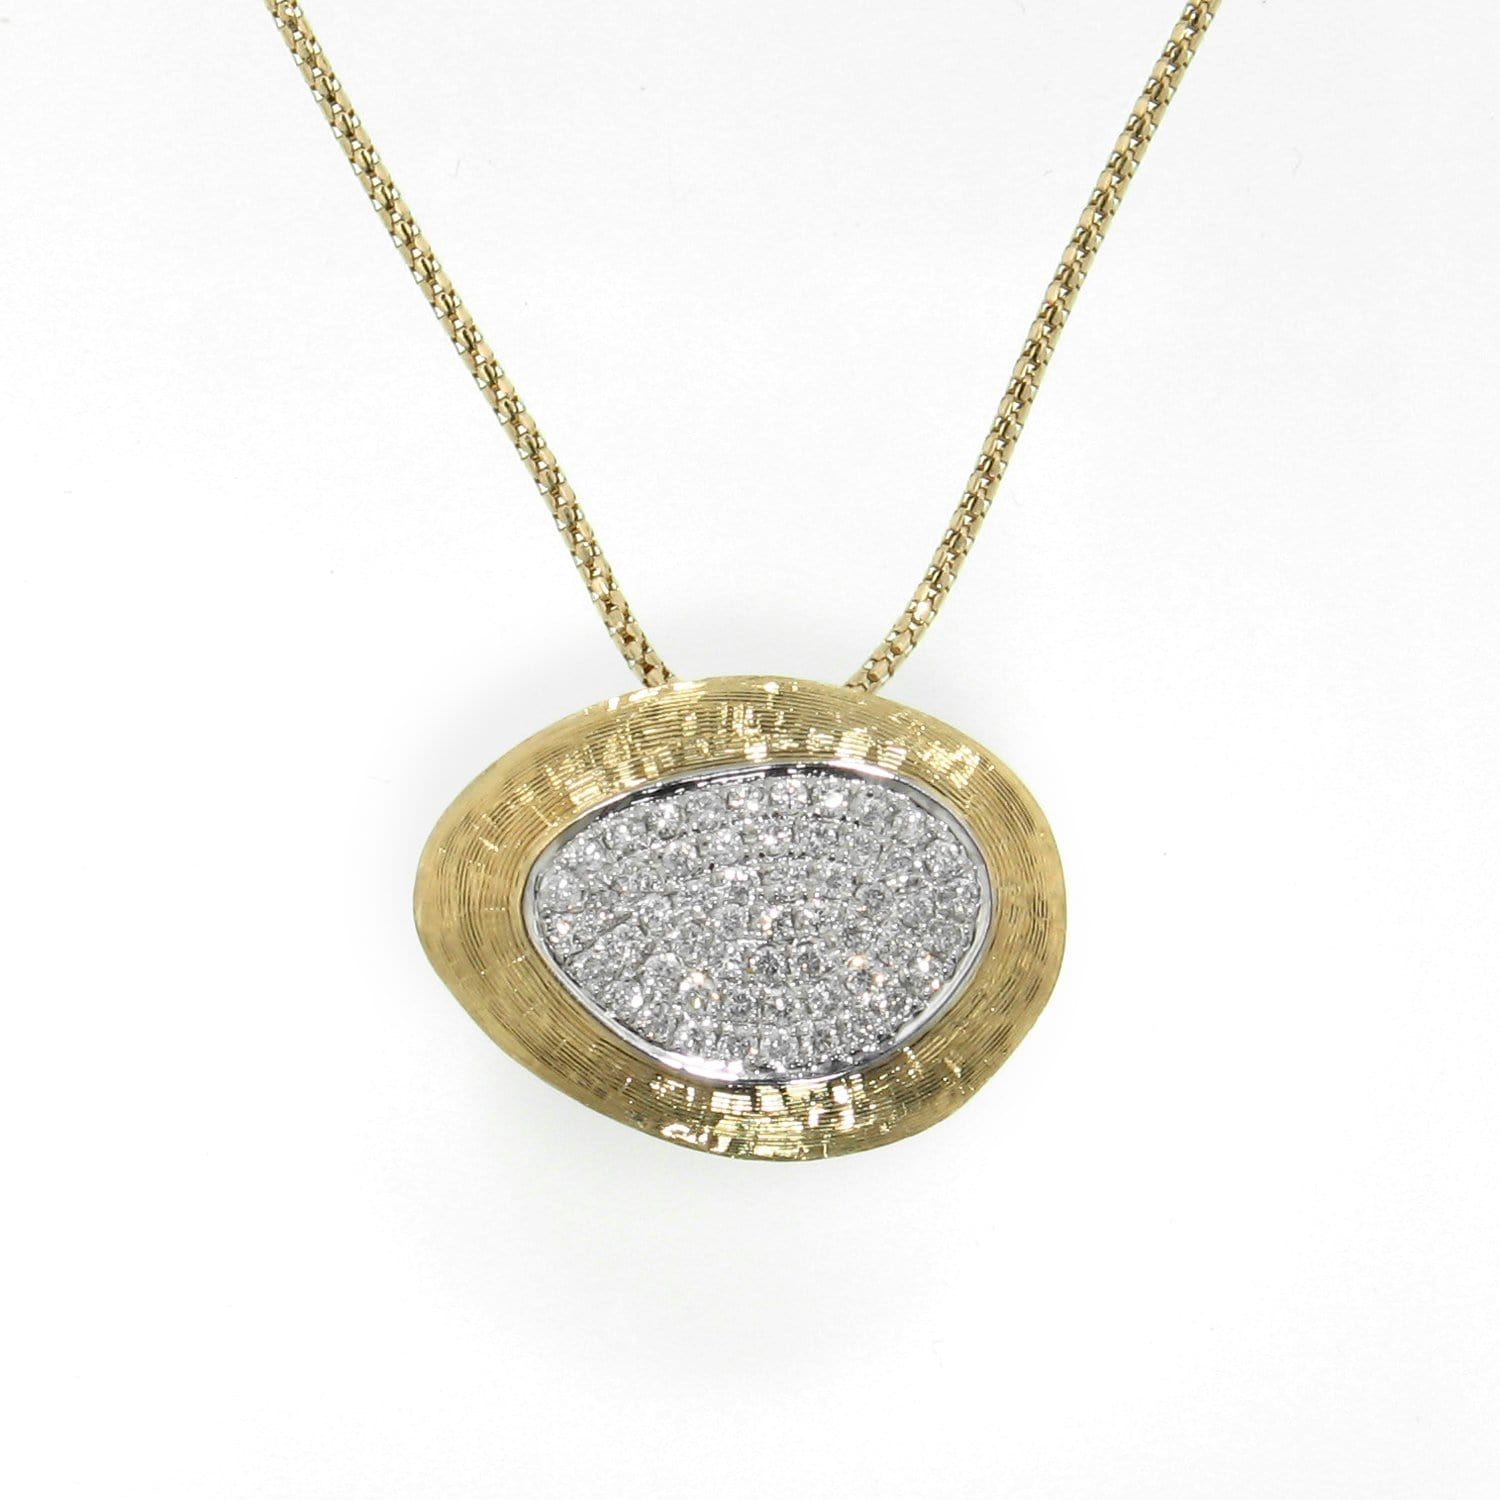 18k Yellow Gold & Diamond Pendant - 581PD-YG-Jayne New York-Renee Taylor Gallery